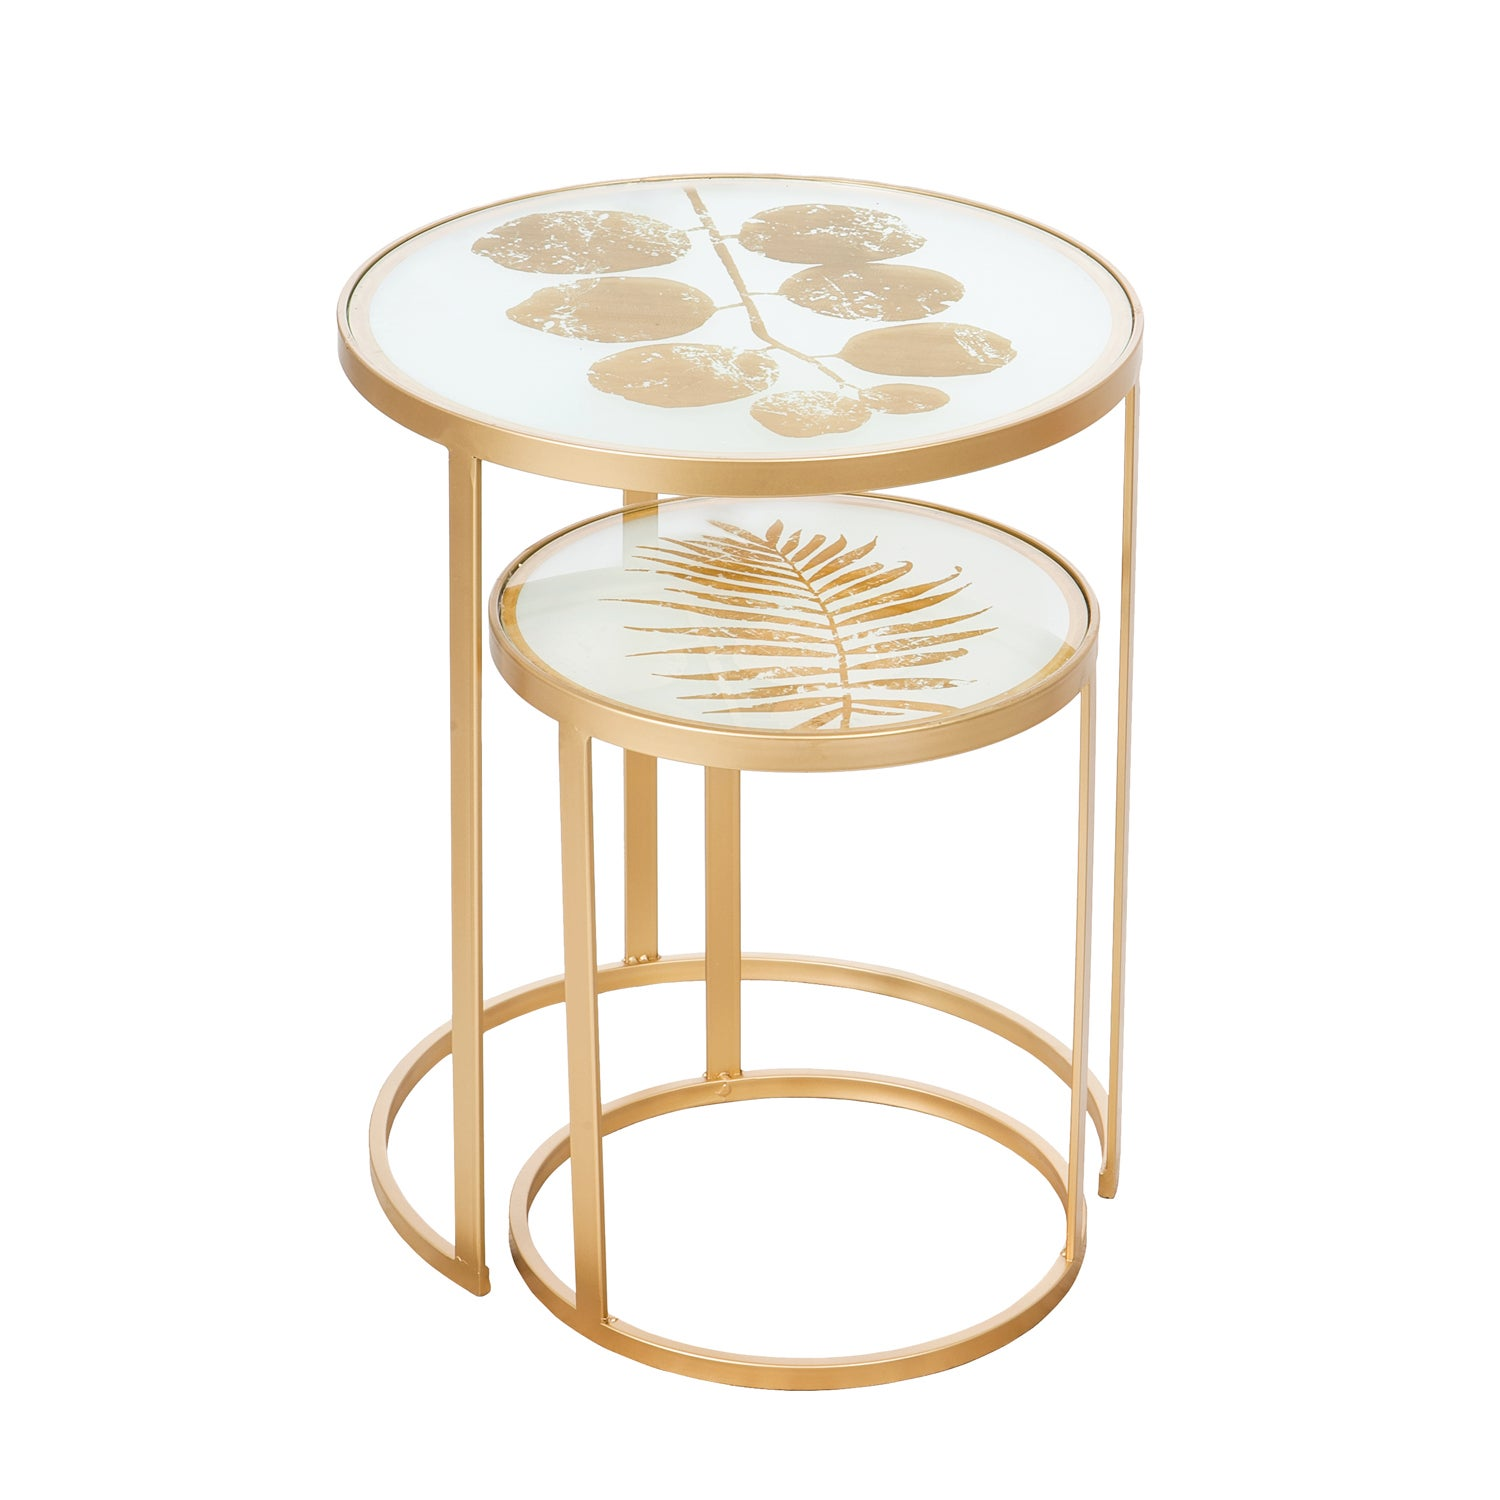 Nested Metal Tables, Set of 2